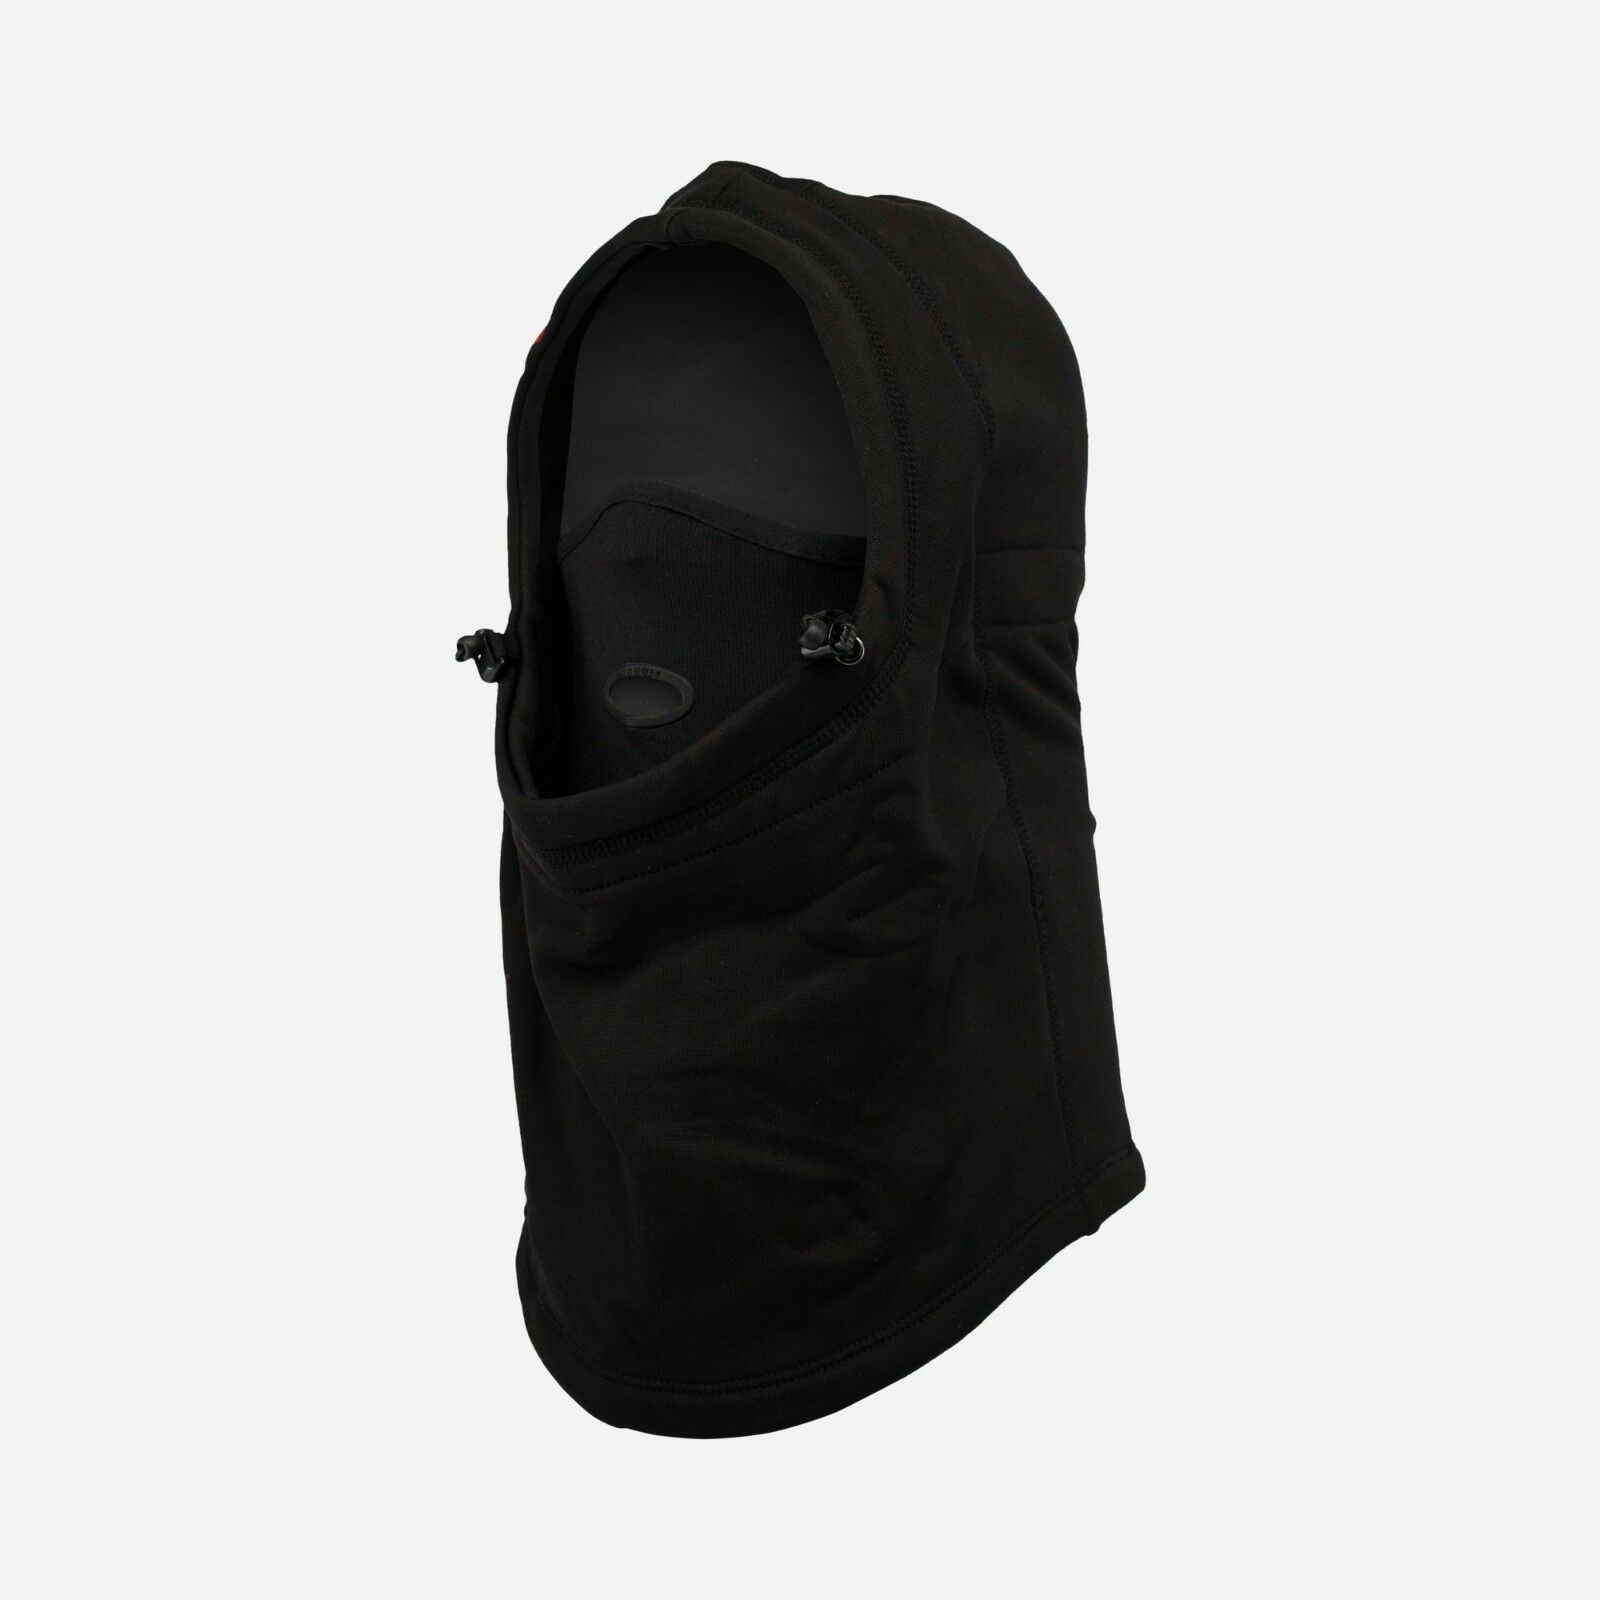 Airhole Balaclava Airhood- Many colors-S M or M L